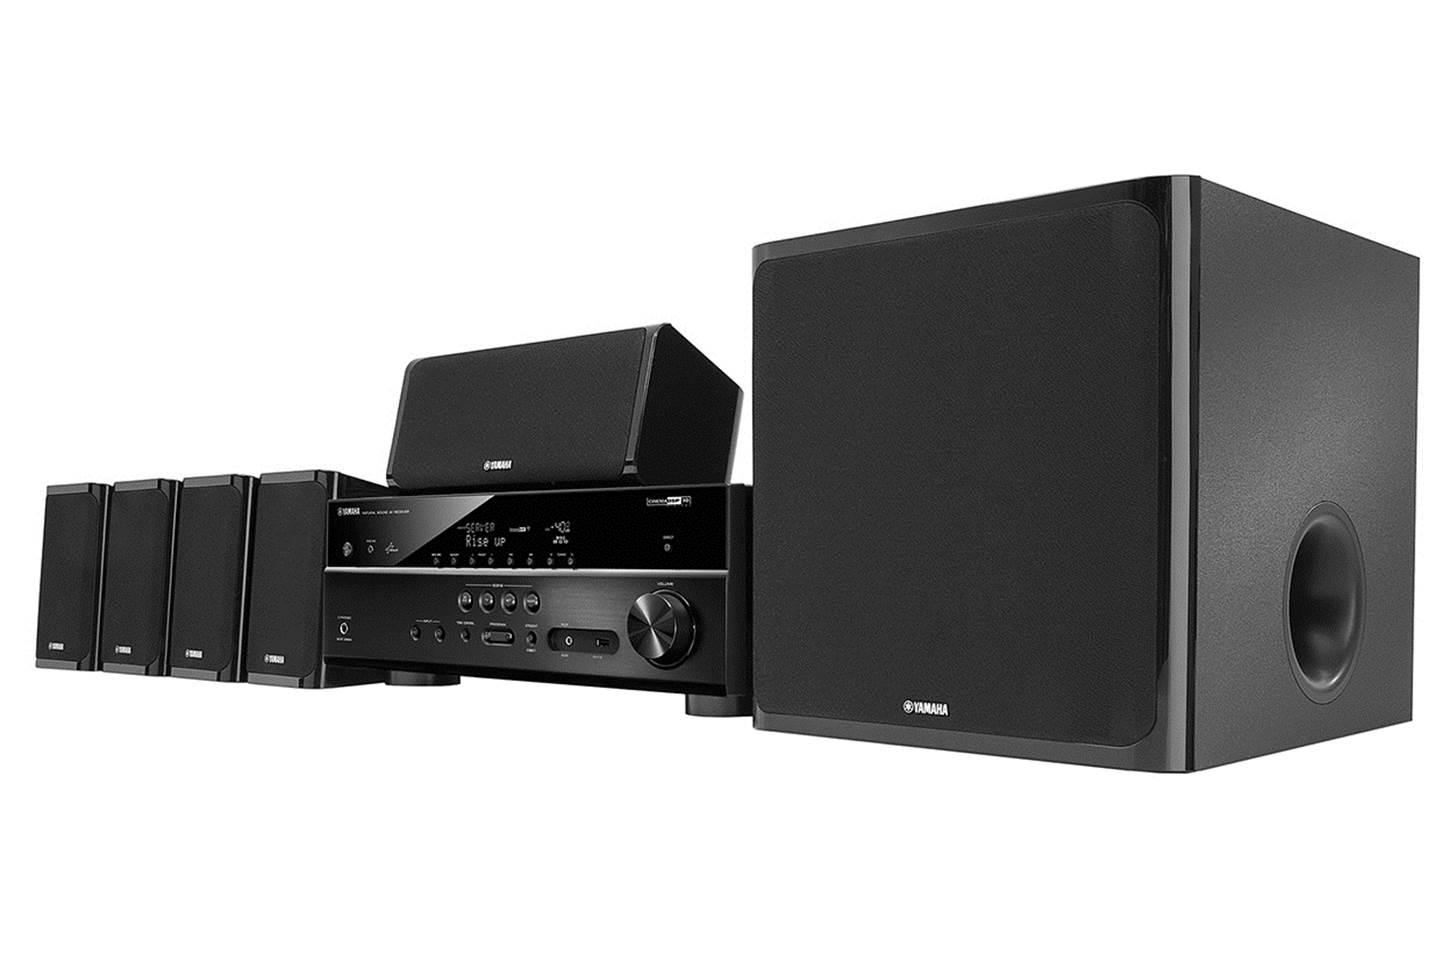 YHT-4930UBL 5.1 Speakers by Yamaha